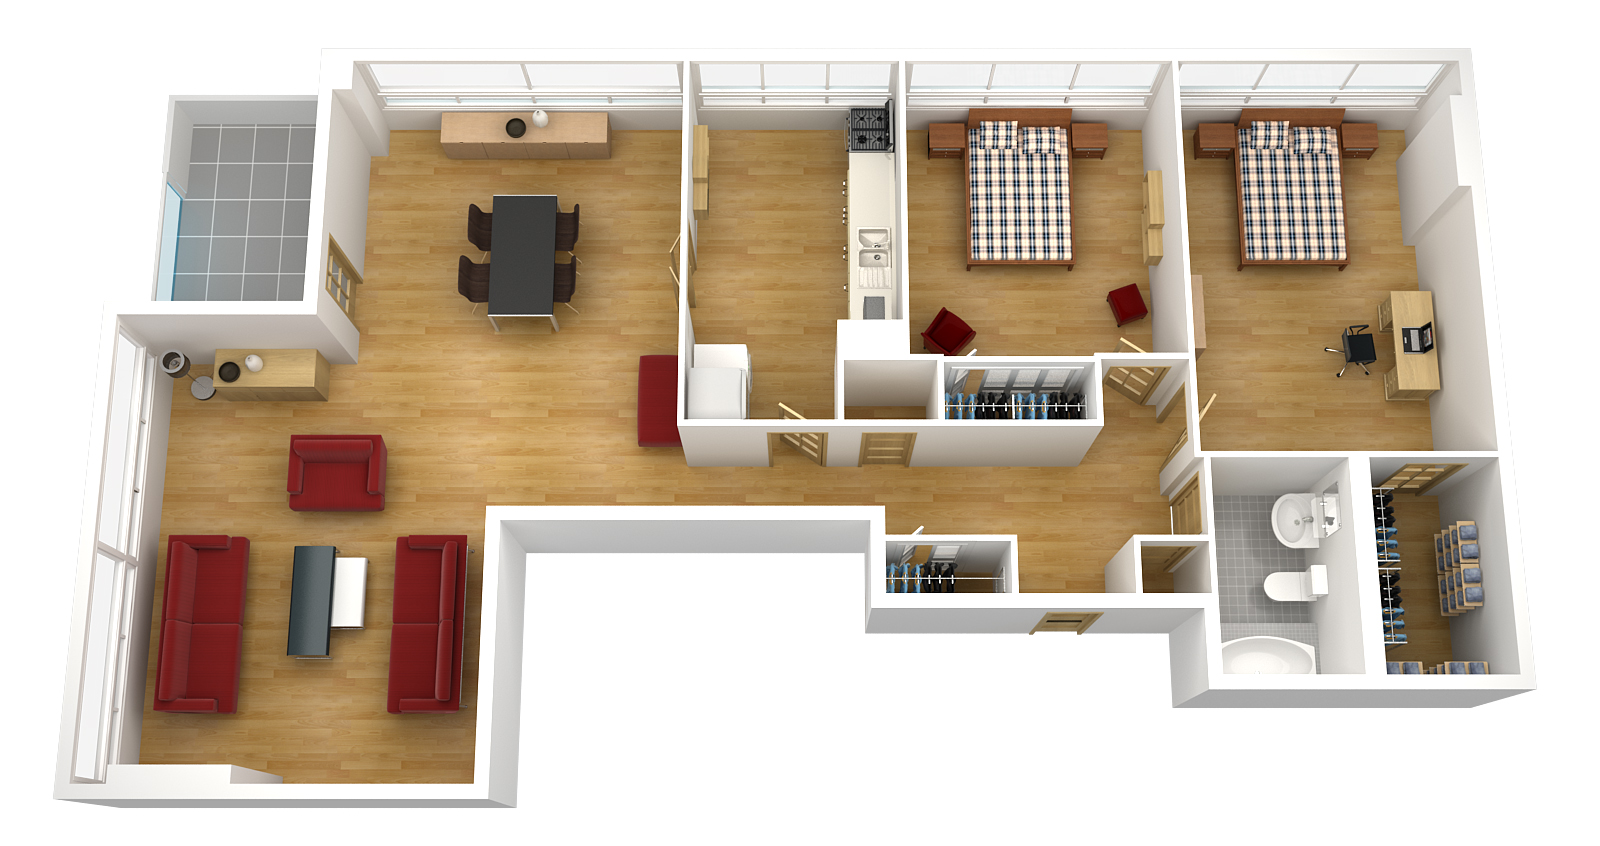 Nethouseplans affordable house plans on nethouseplans affordable house - Nethouseplans Affordable House Plans